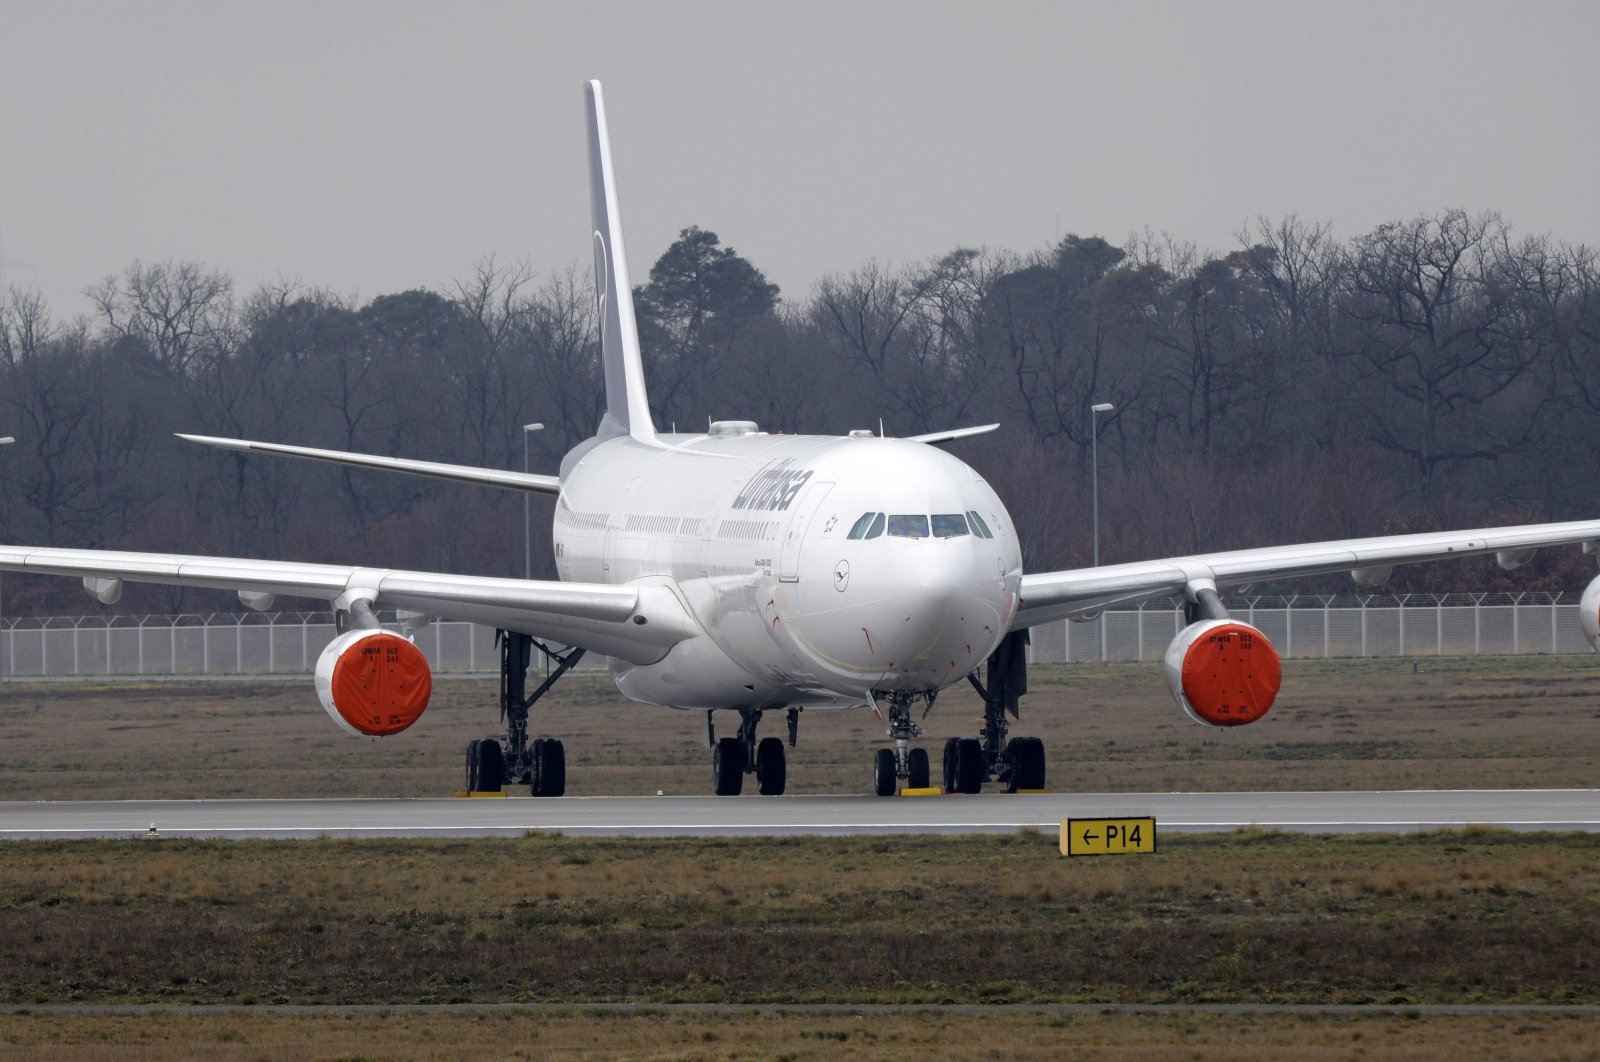 """An Airbus A320-300 aircraft """"Dorsten"""" of German flag carrier Lufthansa parks on a closed runway at the international airport in Frankfurt am Main, Germany, Dec. 21, 2020. (EPA Photo)"""